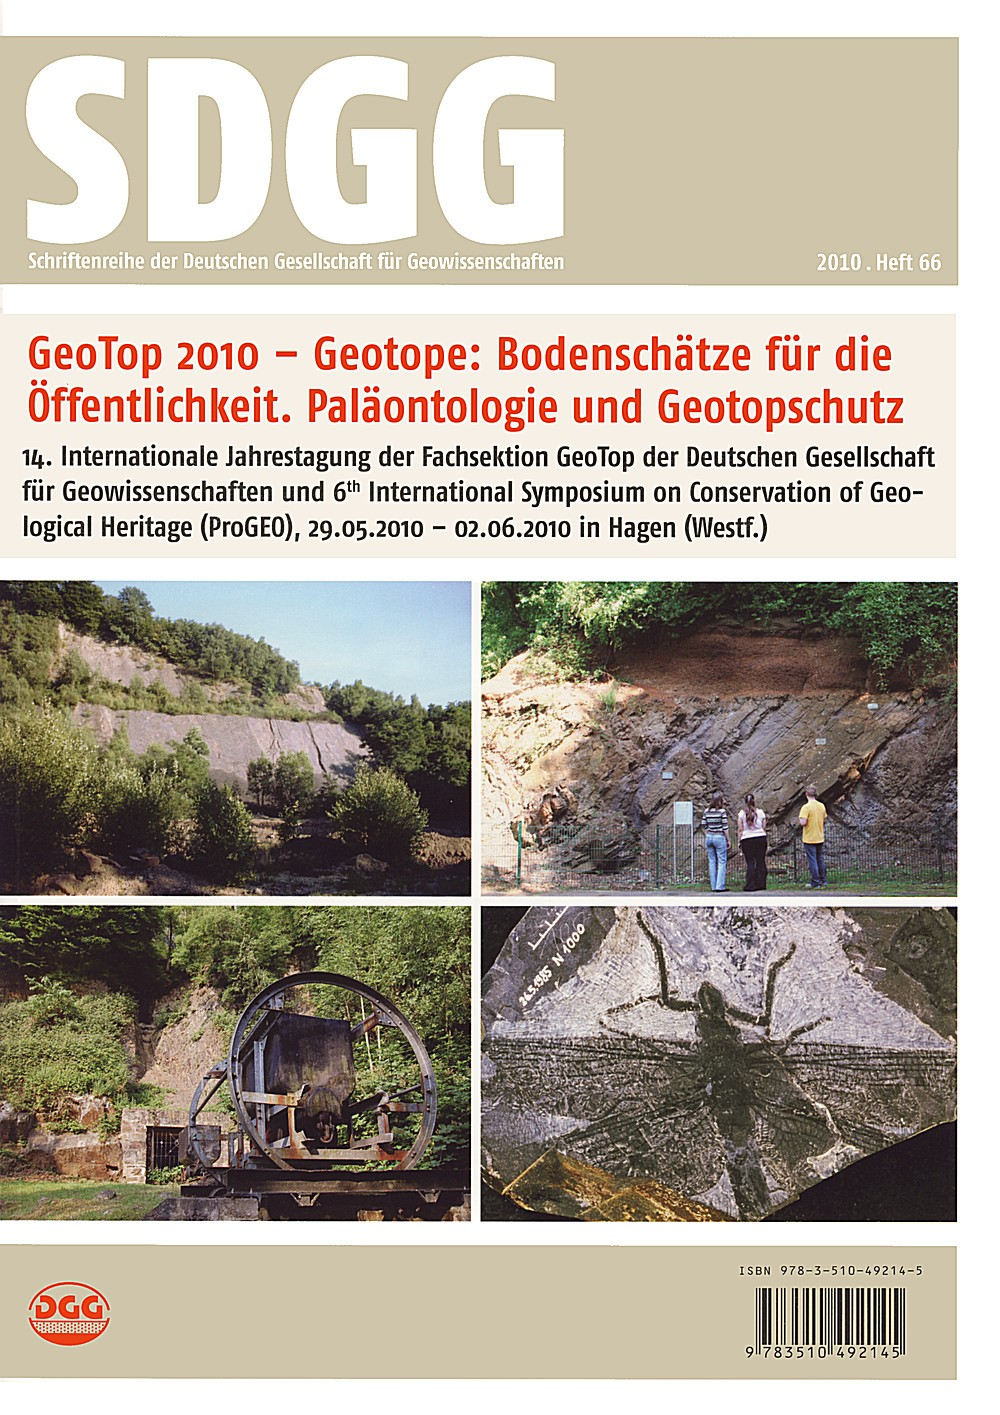 GeoTop 2010 /Geosites for the Public /Paleontology and Conservation of Geosites | Mügge-Bartolovic / Röhling / Wrede, 2010 | Buch (Cover)